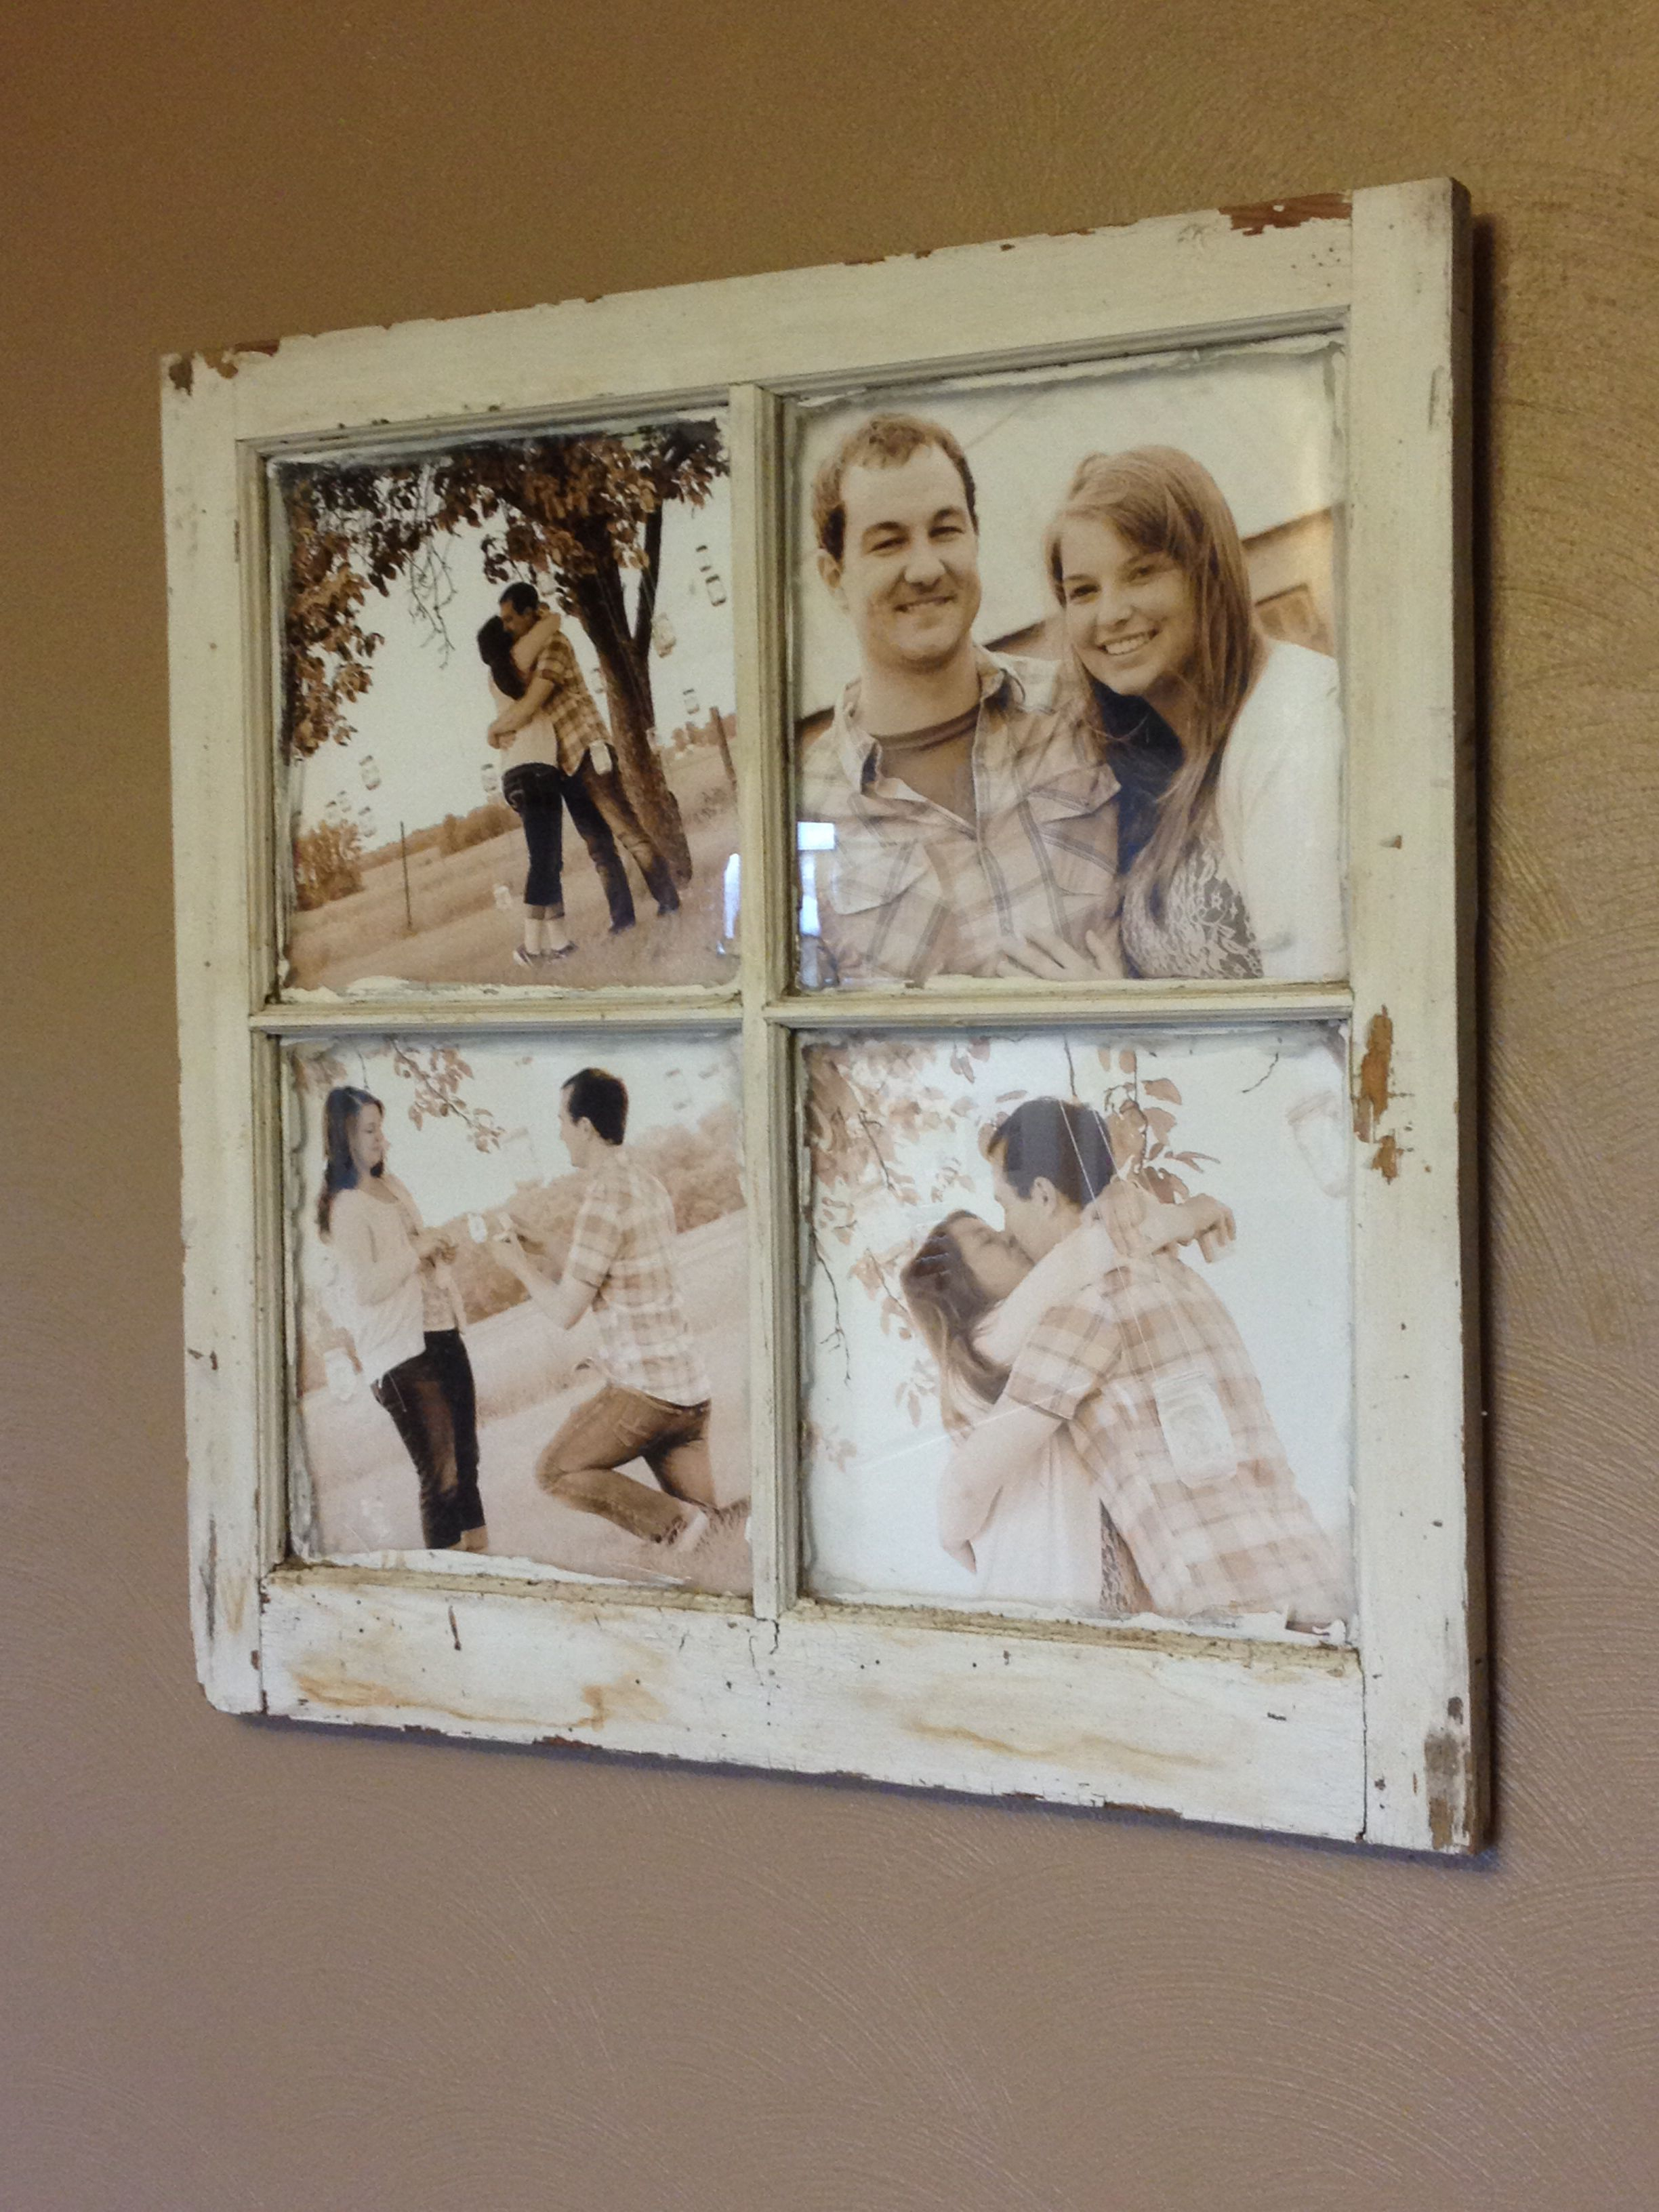 Old Barn Window Picture Frame | Decorating | Old Window intended for Old Rustic Barn Window Frame (Image 12 of 30)